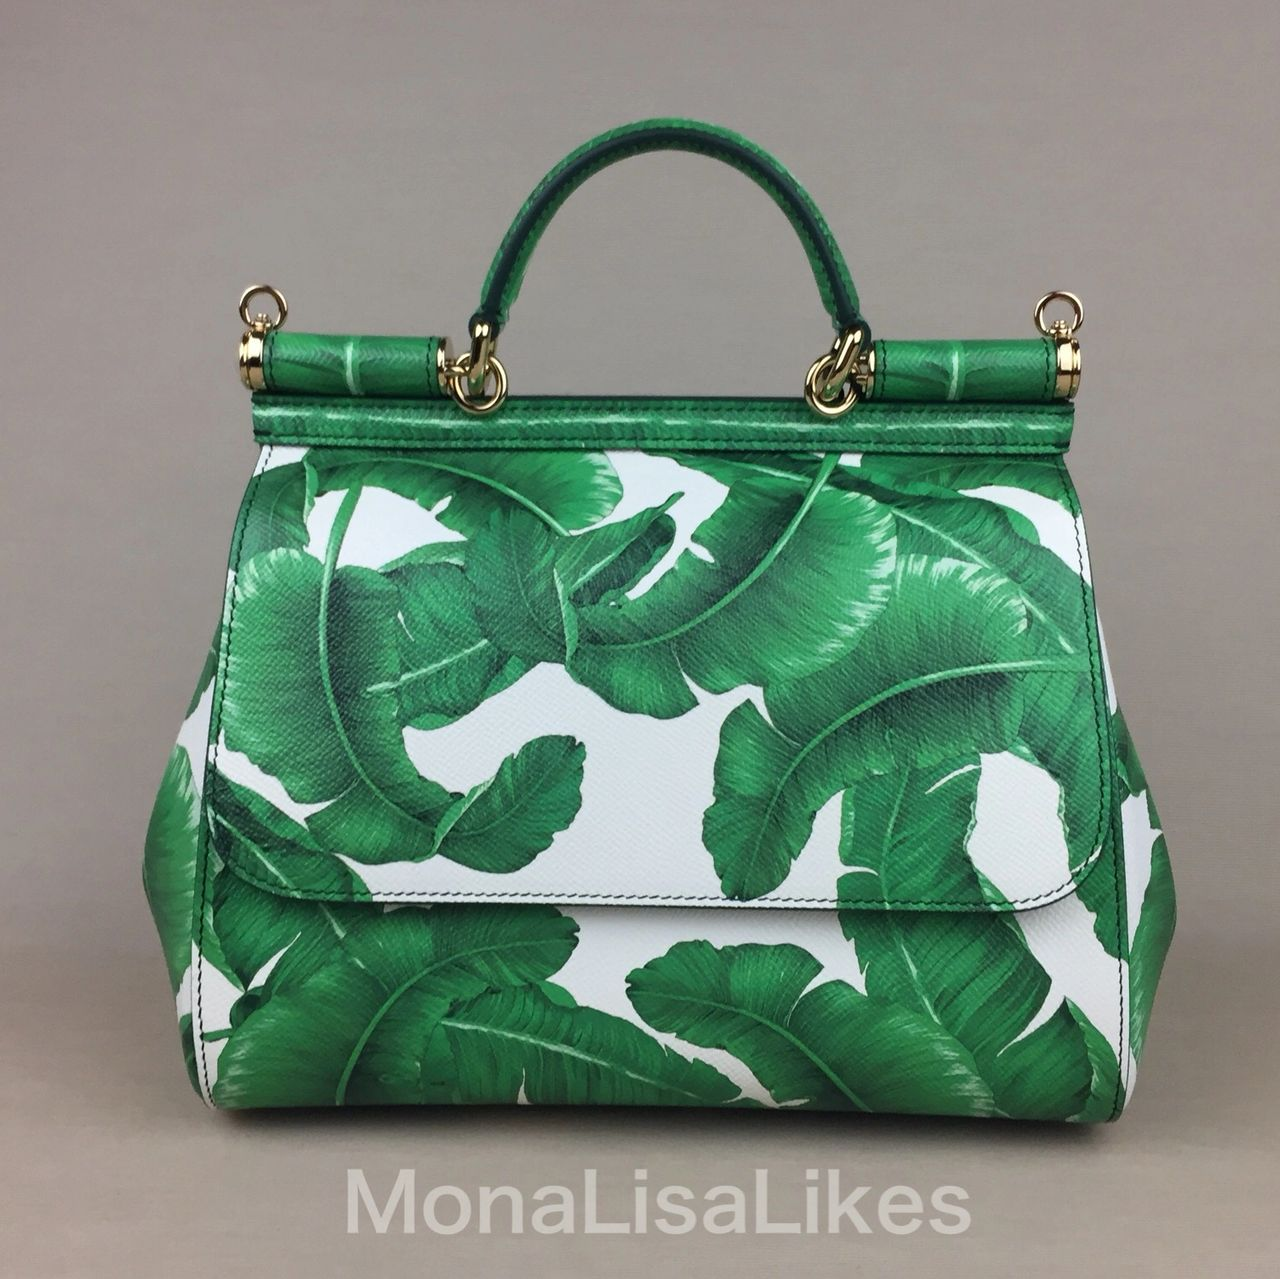 DOLCE & GABBANA Palm Leaves print like one on this Sicily purse created a whole trend, copied by numeroud designers including Michael Kors